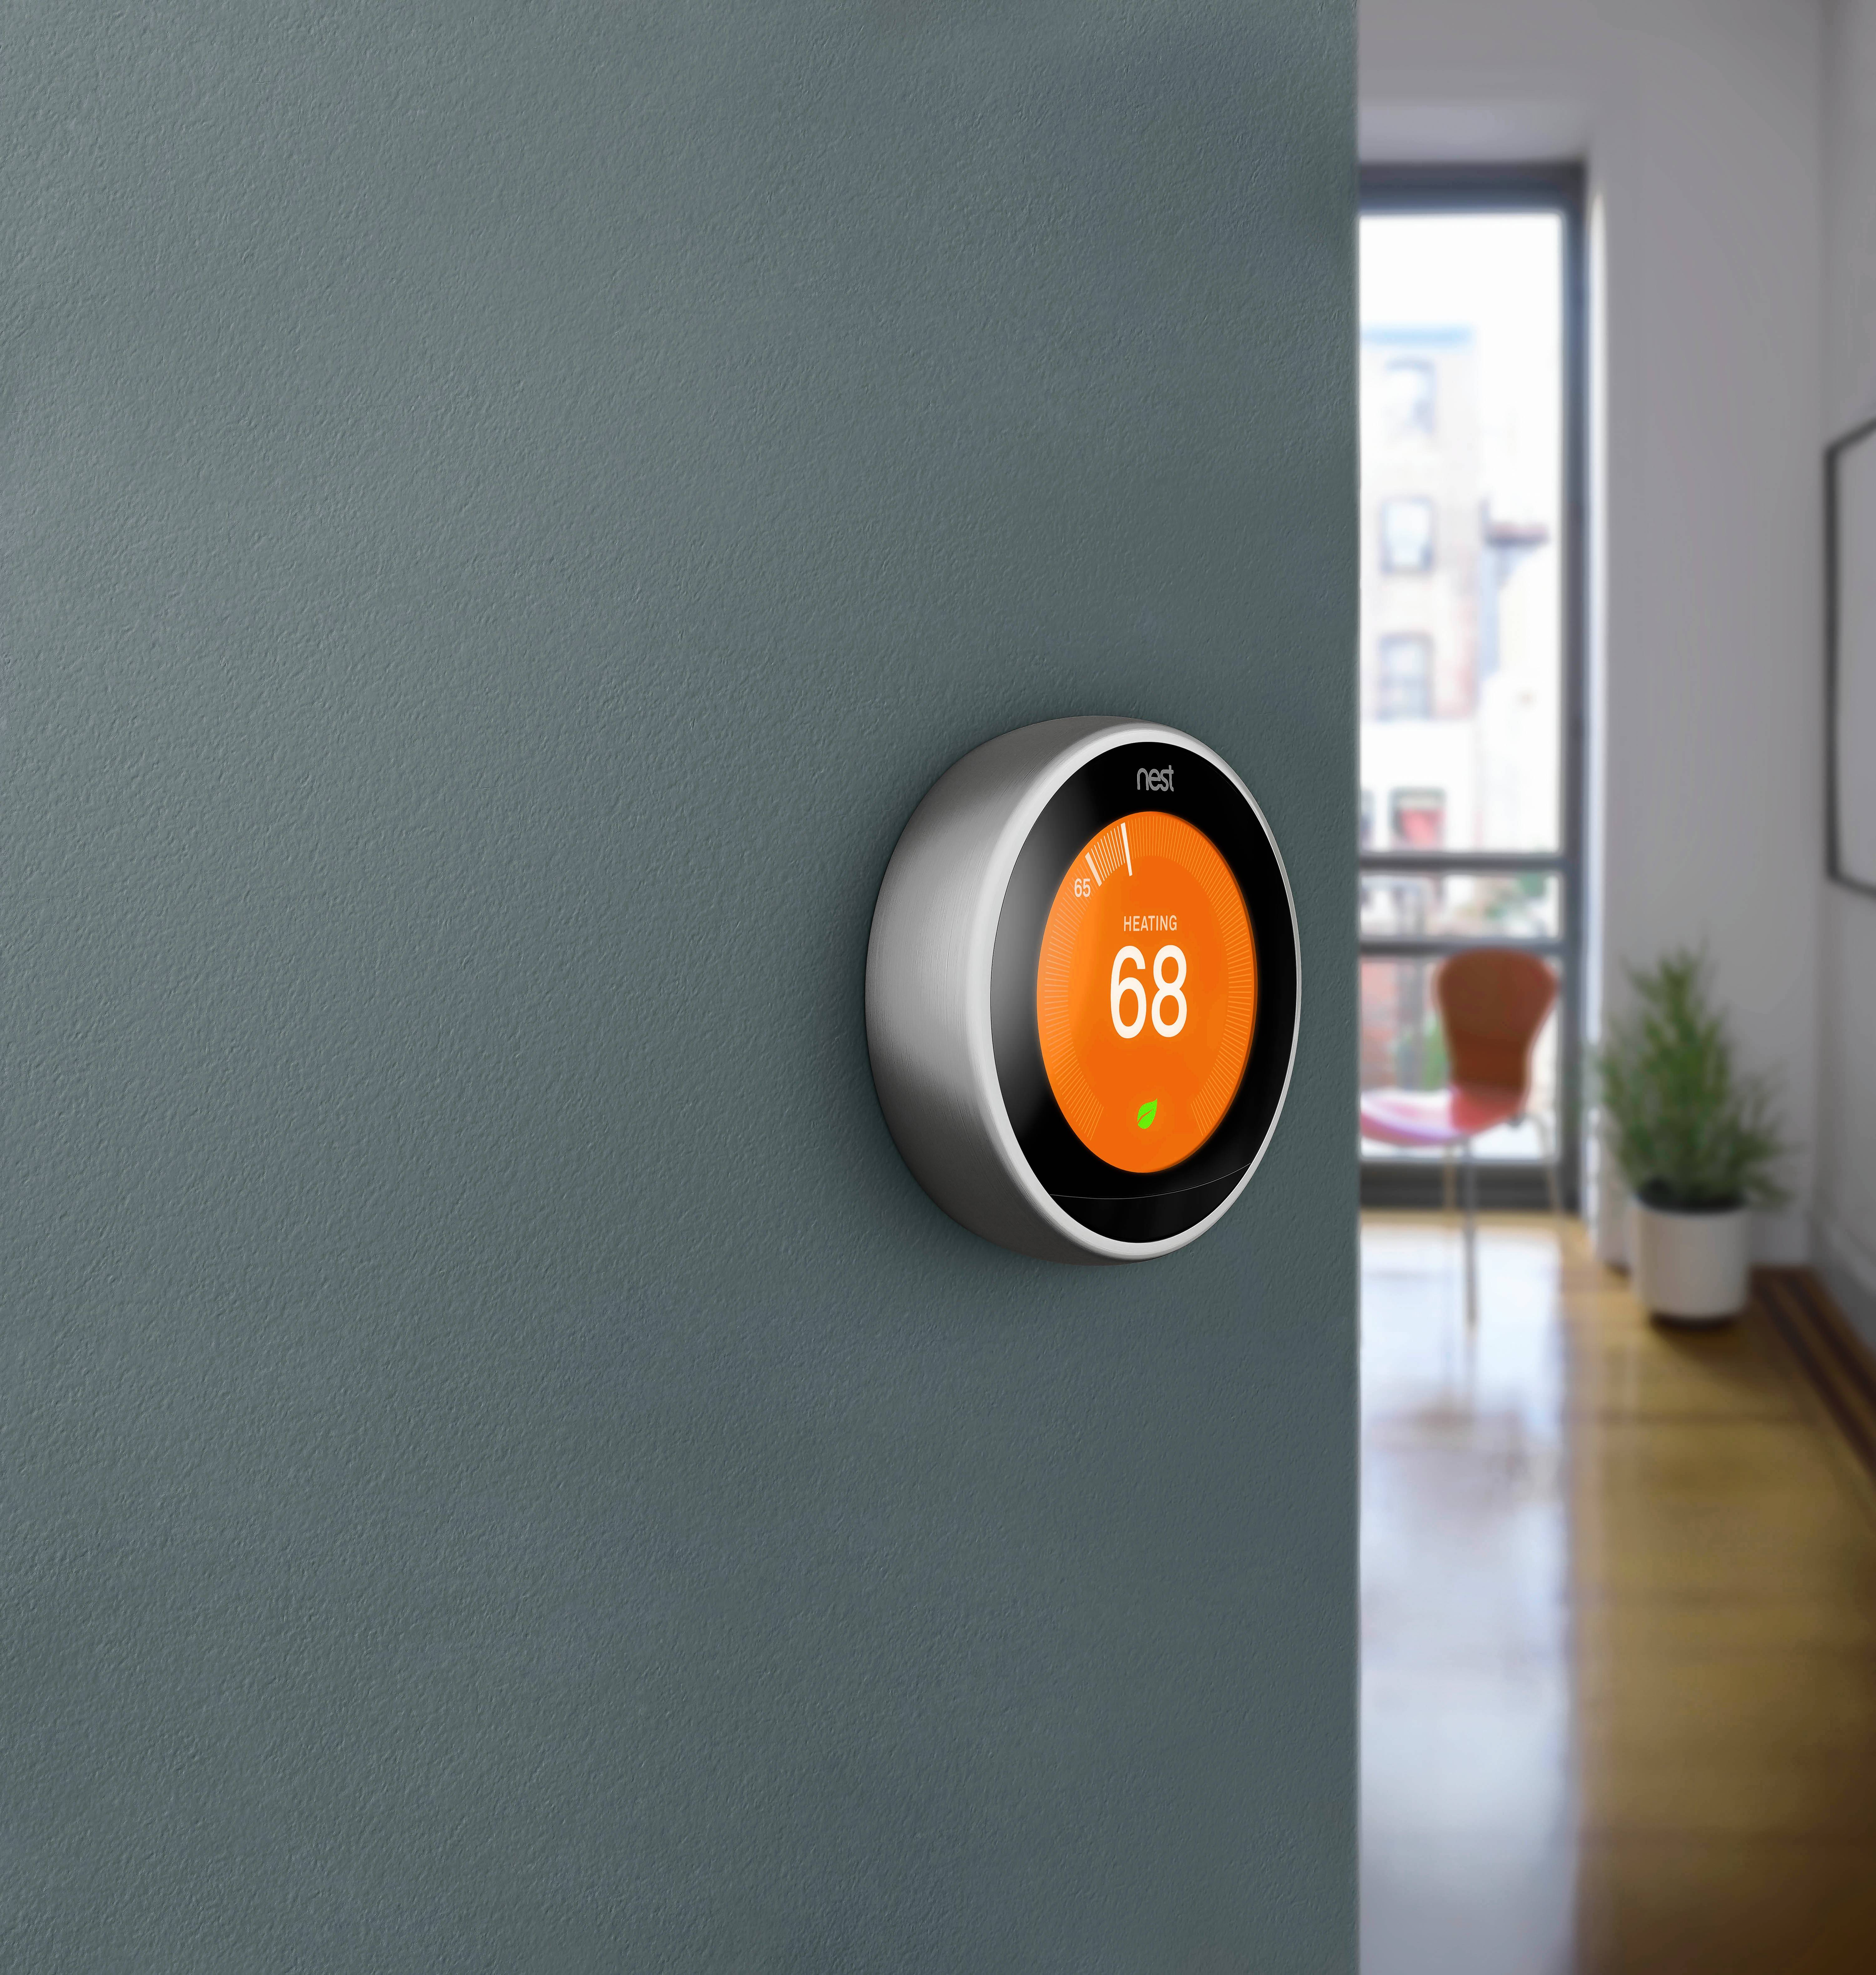 The Nest Learning Thermostat retails for around $250 from most retailers.